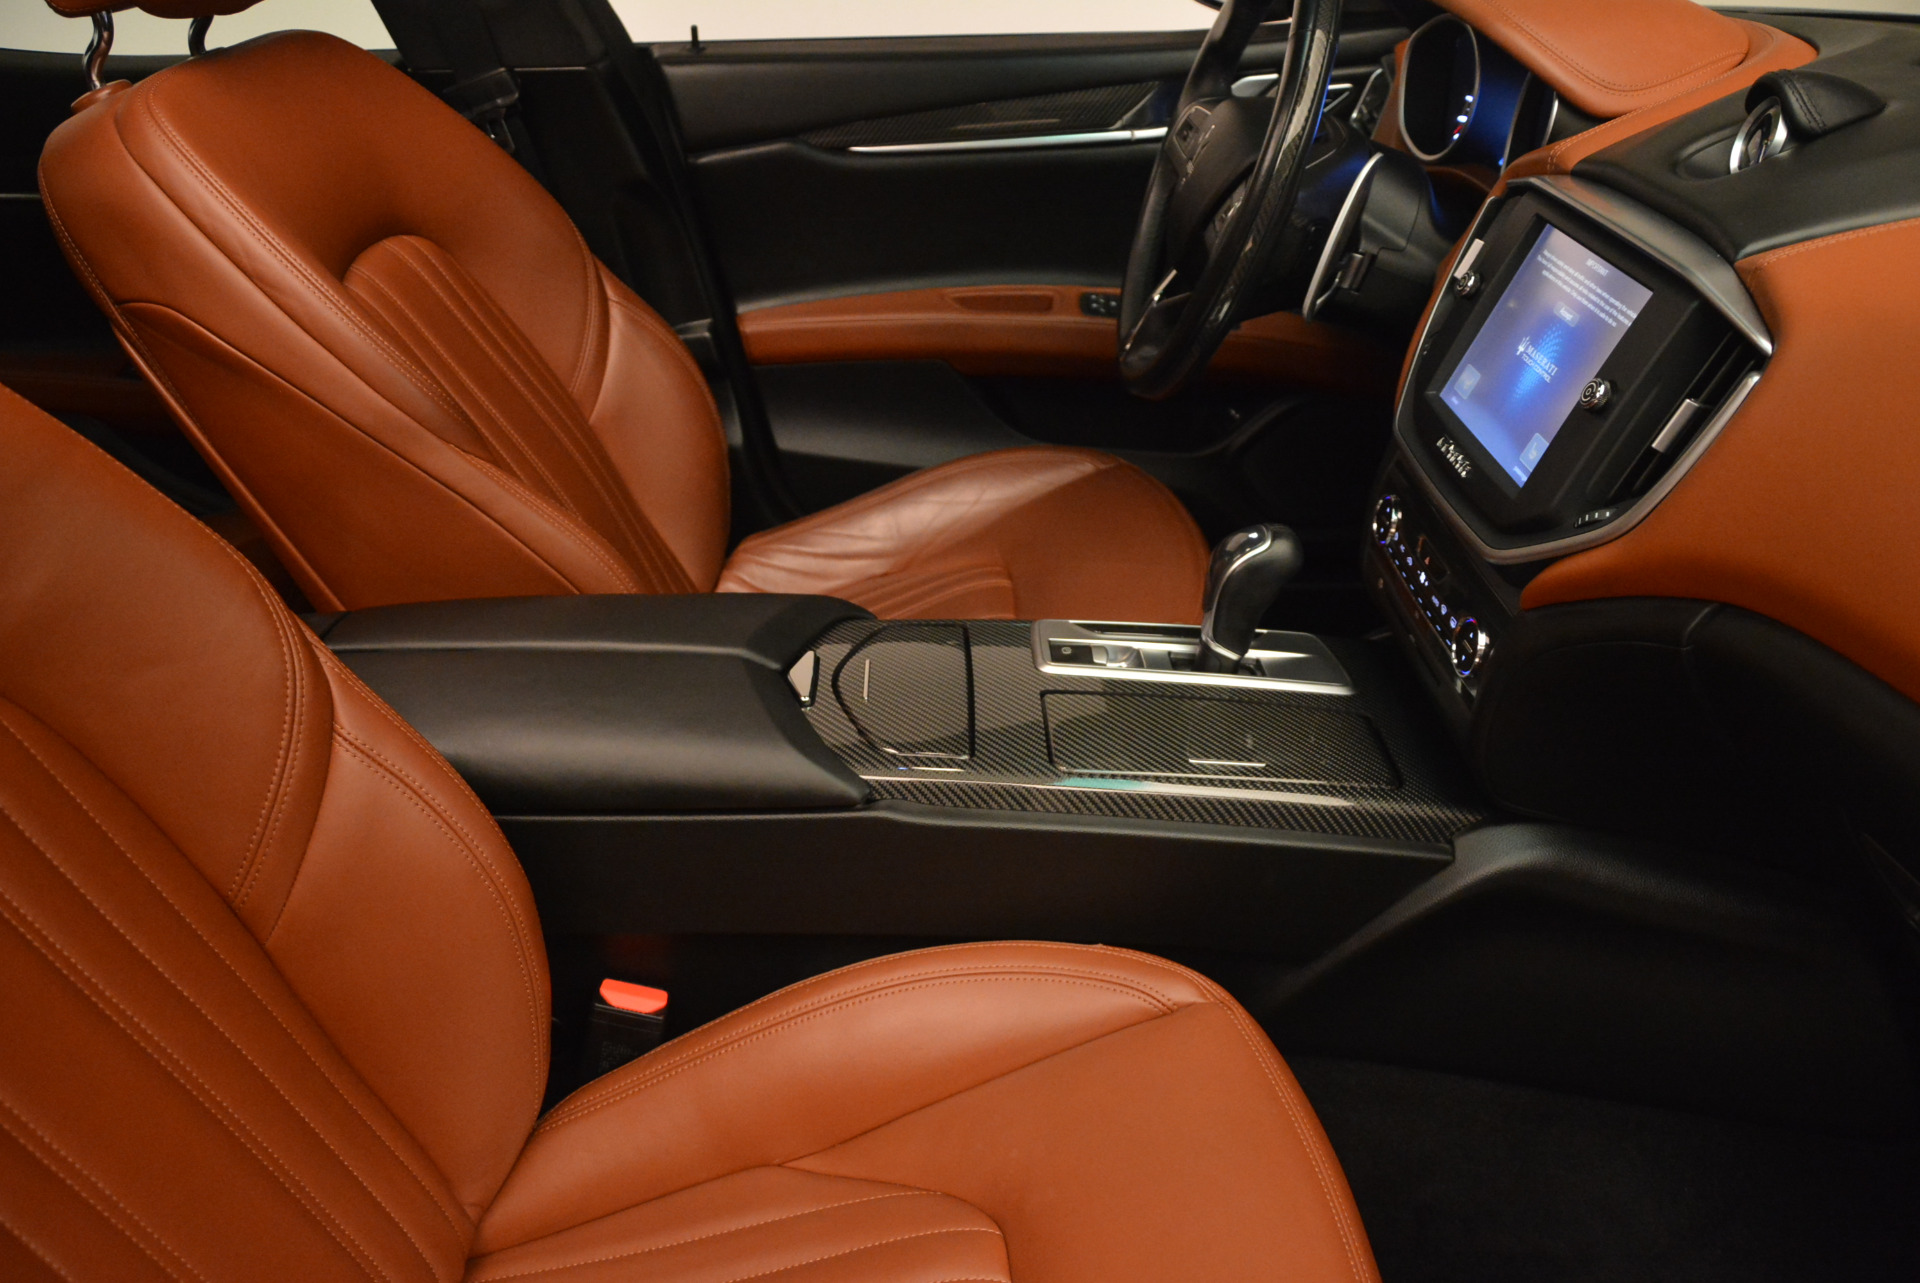 Used 2014 Maserati Ghibli S Q4 For Sale In Westport, CT 805_p21